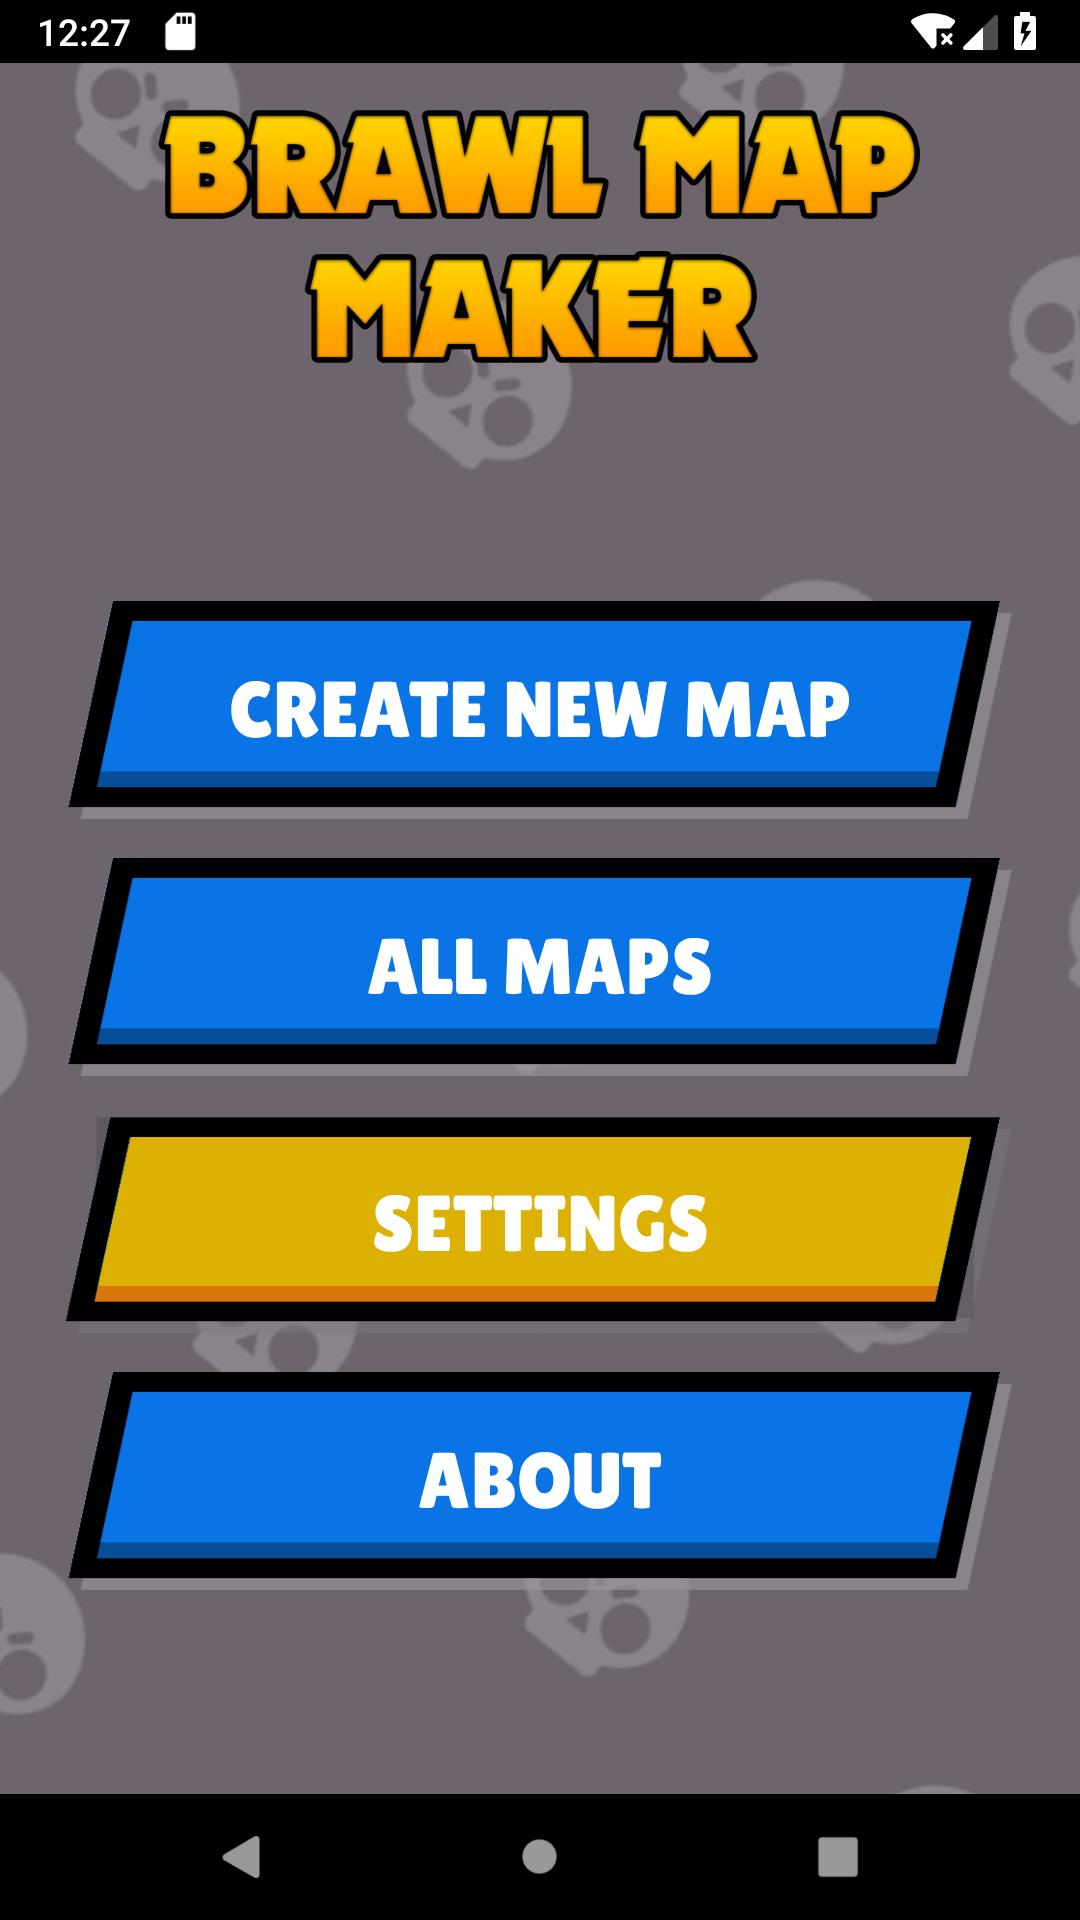 Brawl Map Maker for Android - APK Download